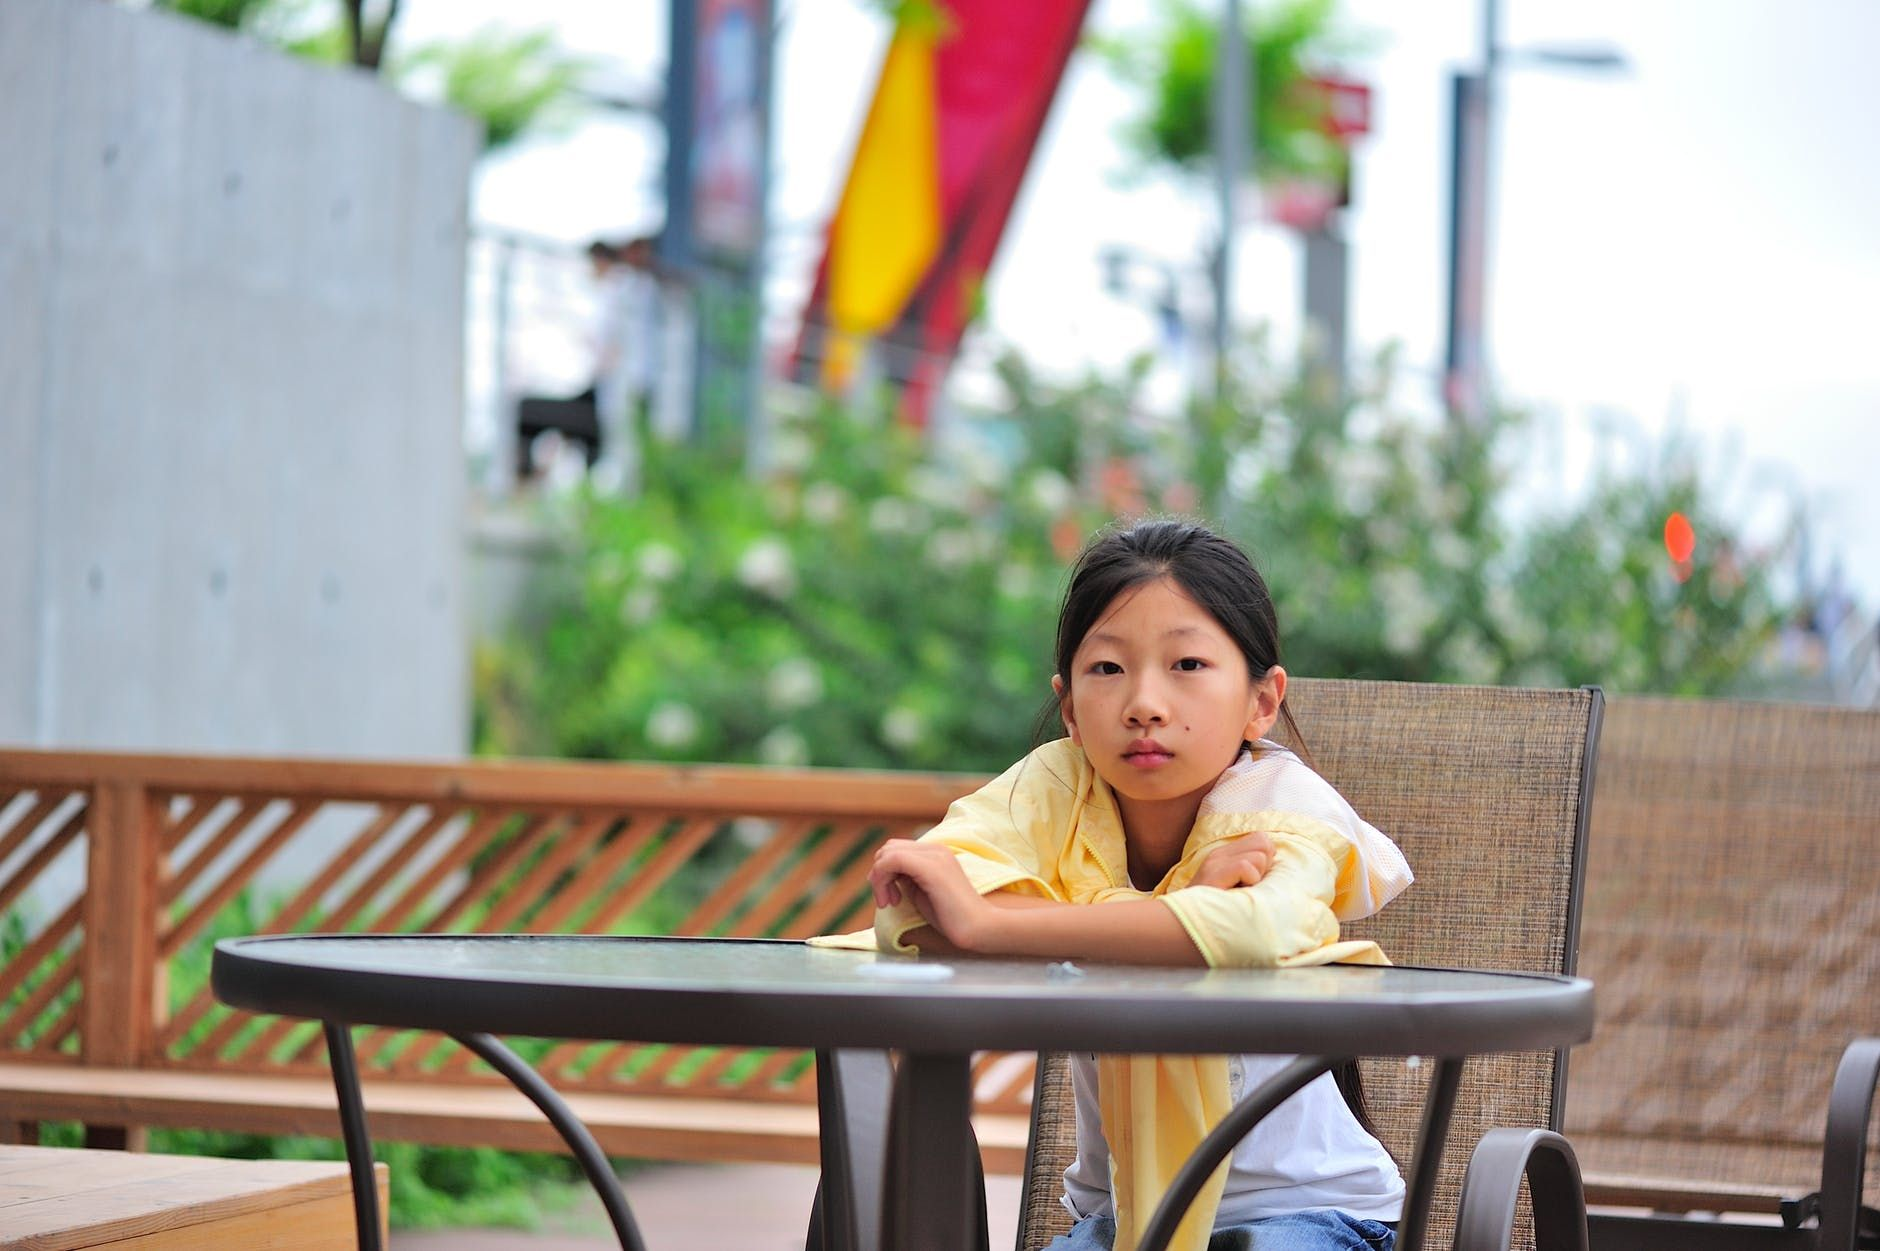 A Chinese school student sitting a table outside